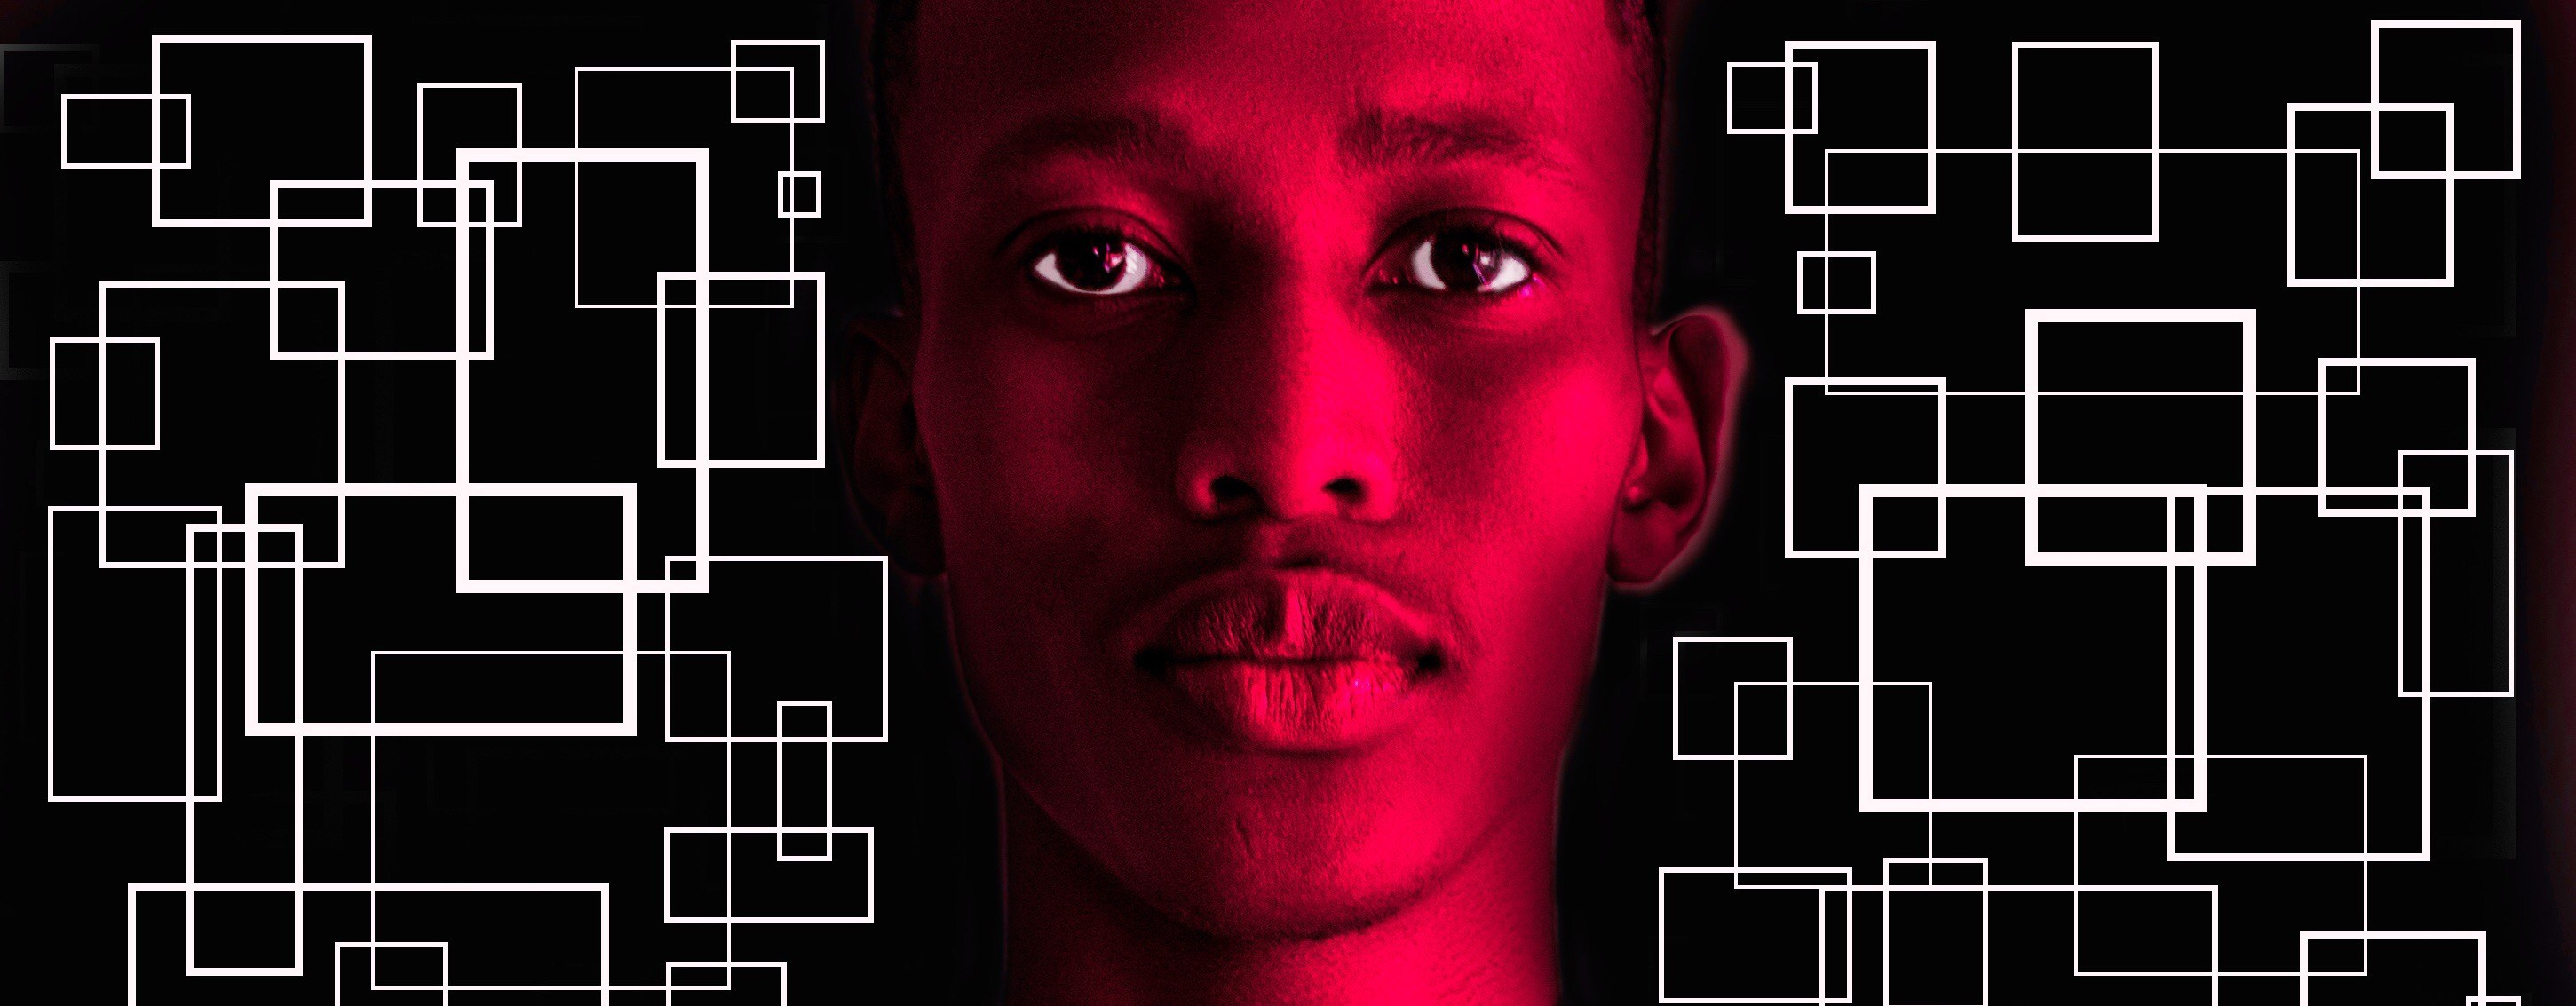 Blood, symbolizing the wounds, physical and emotional, of queer Africans, and the boxes that people, queer and straight, put themselves and others in, are the main visual motifs of Lesh Maseng's radical dance piece G.A.Y. (Photo courtesy of Endotica.org)